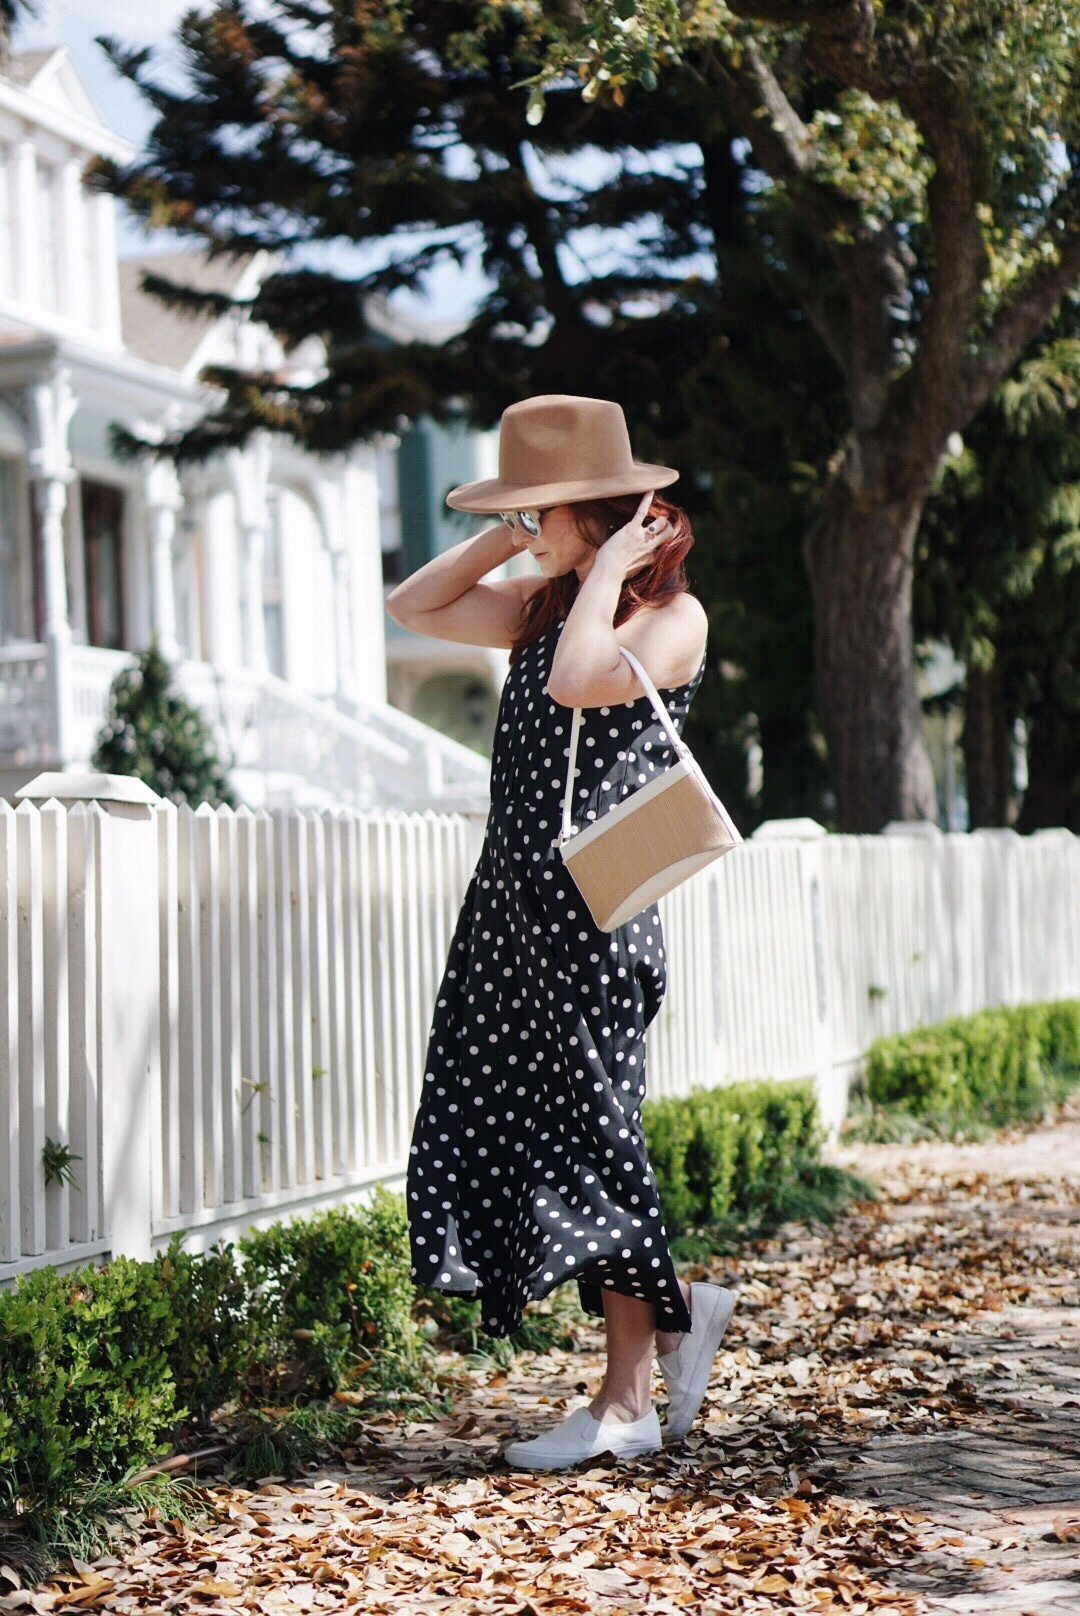 straw bags, dresses with sneakers, polka dot outfits, brown fedora hat, Galveston Island